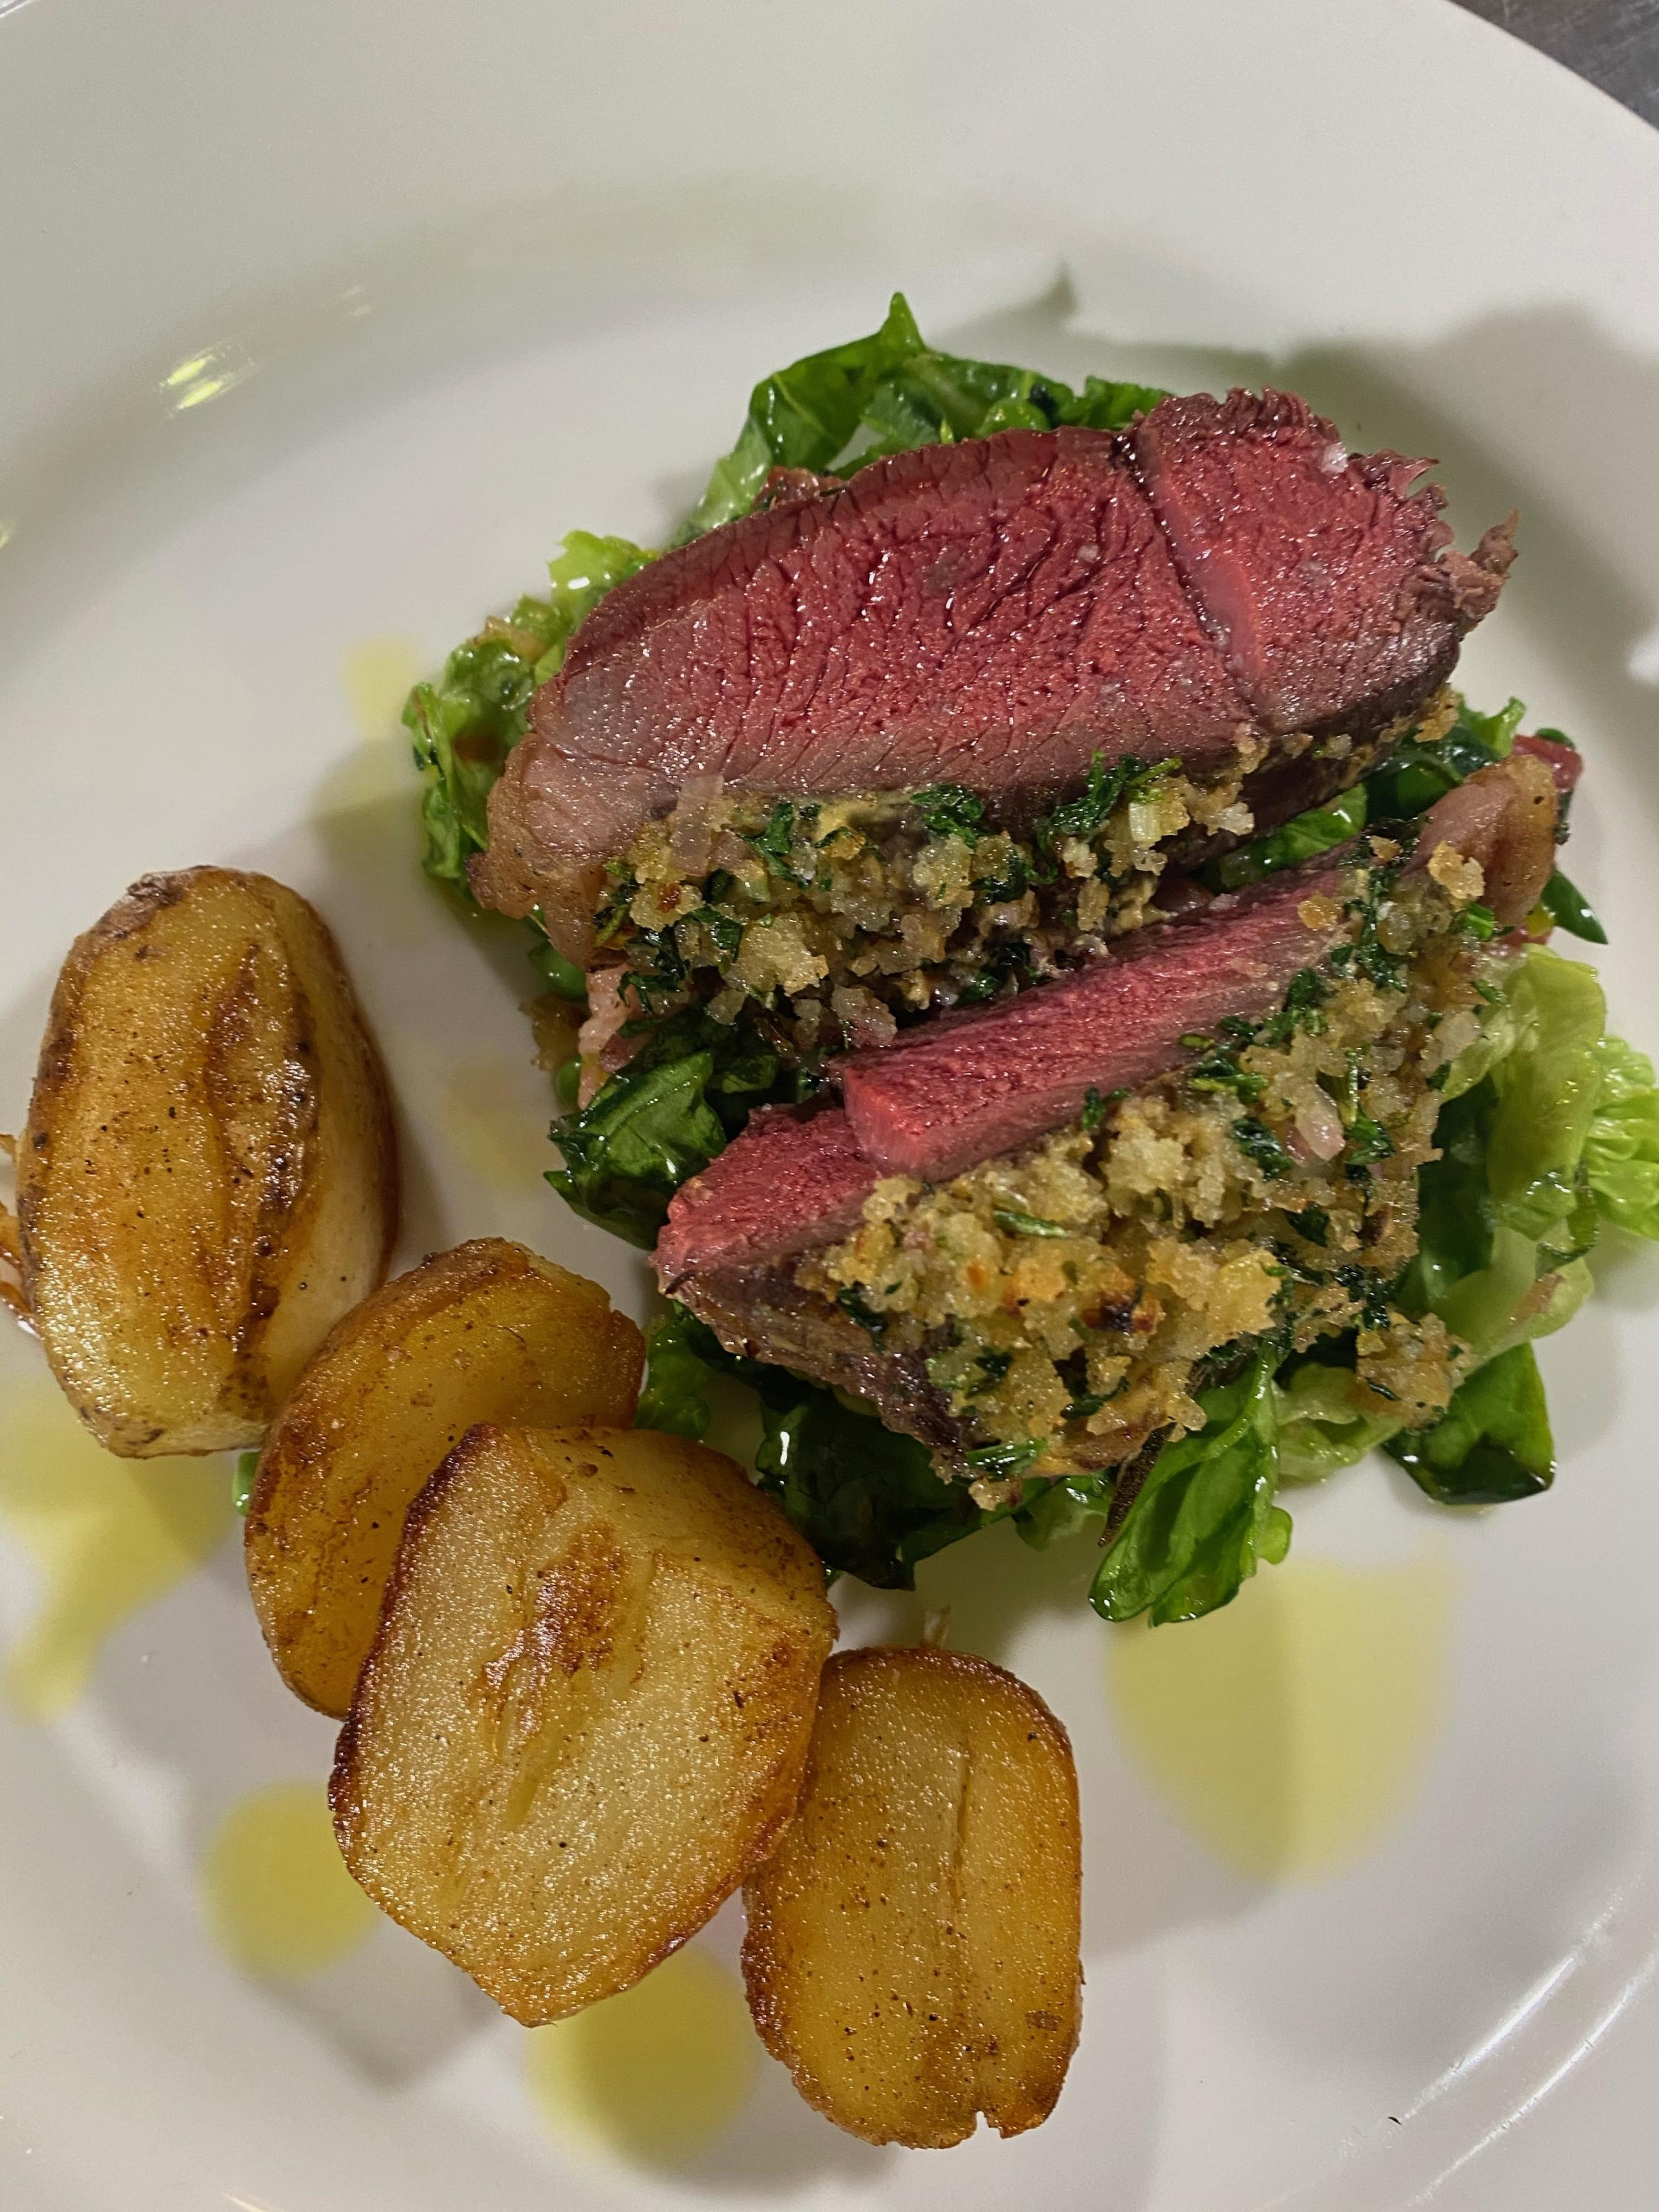 Neils dish features North Ronaldsay mutton ... looks like a real treat